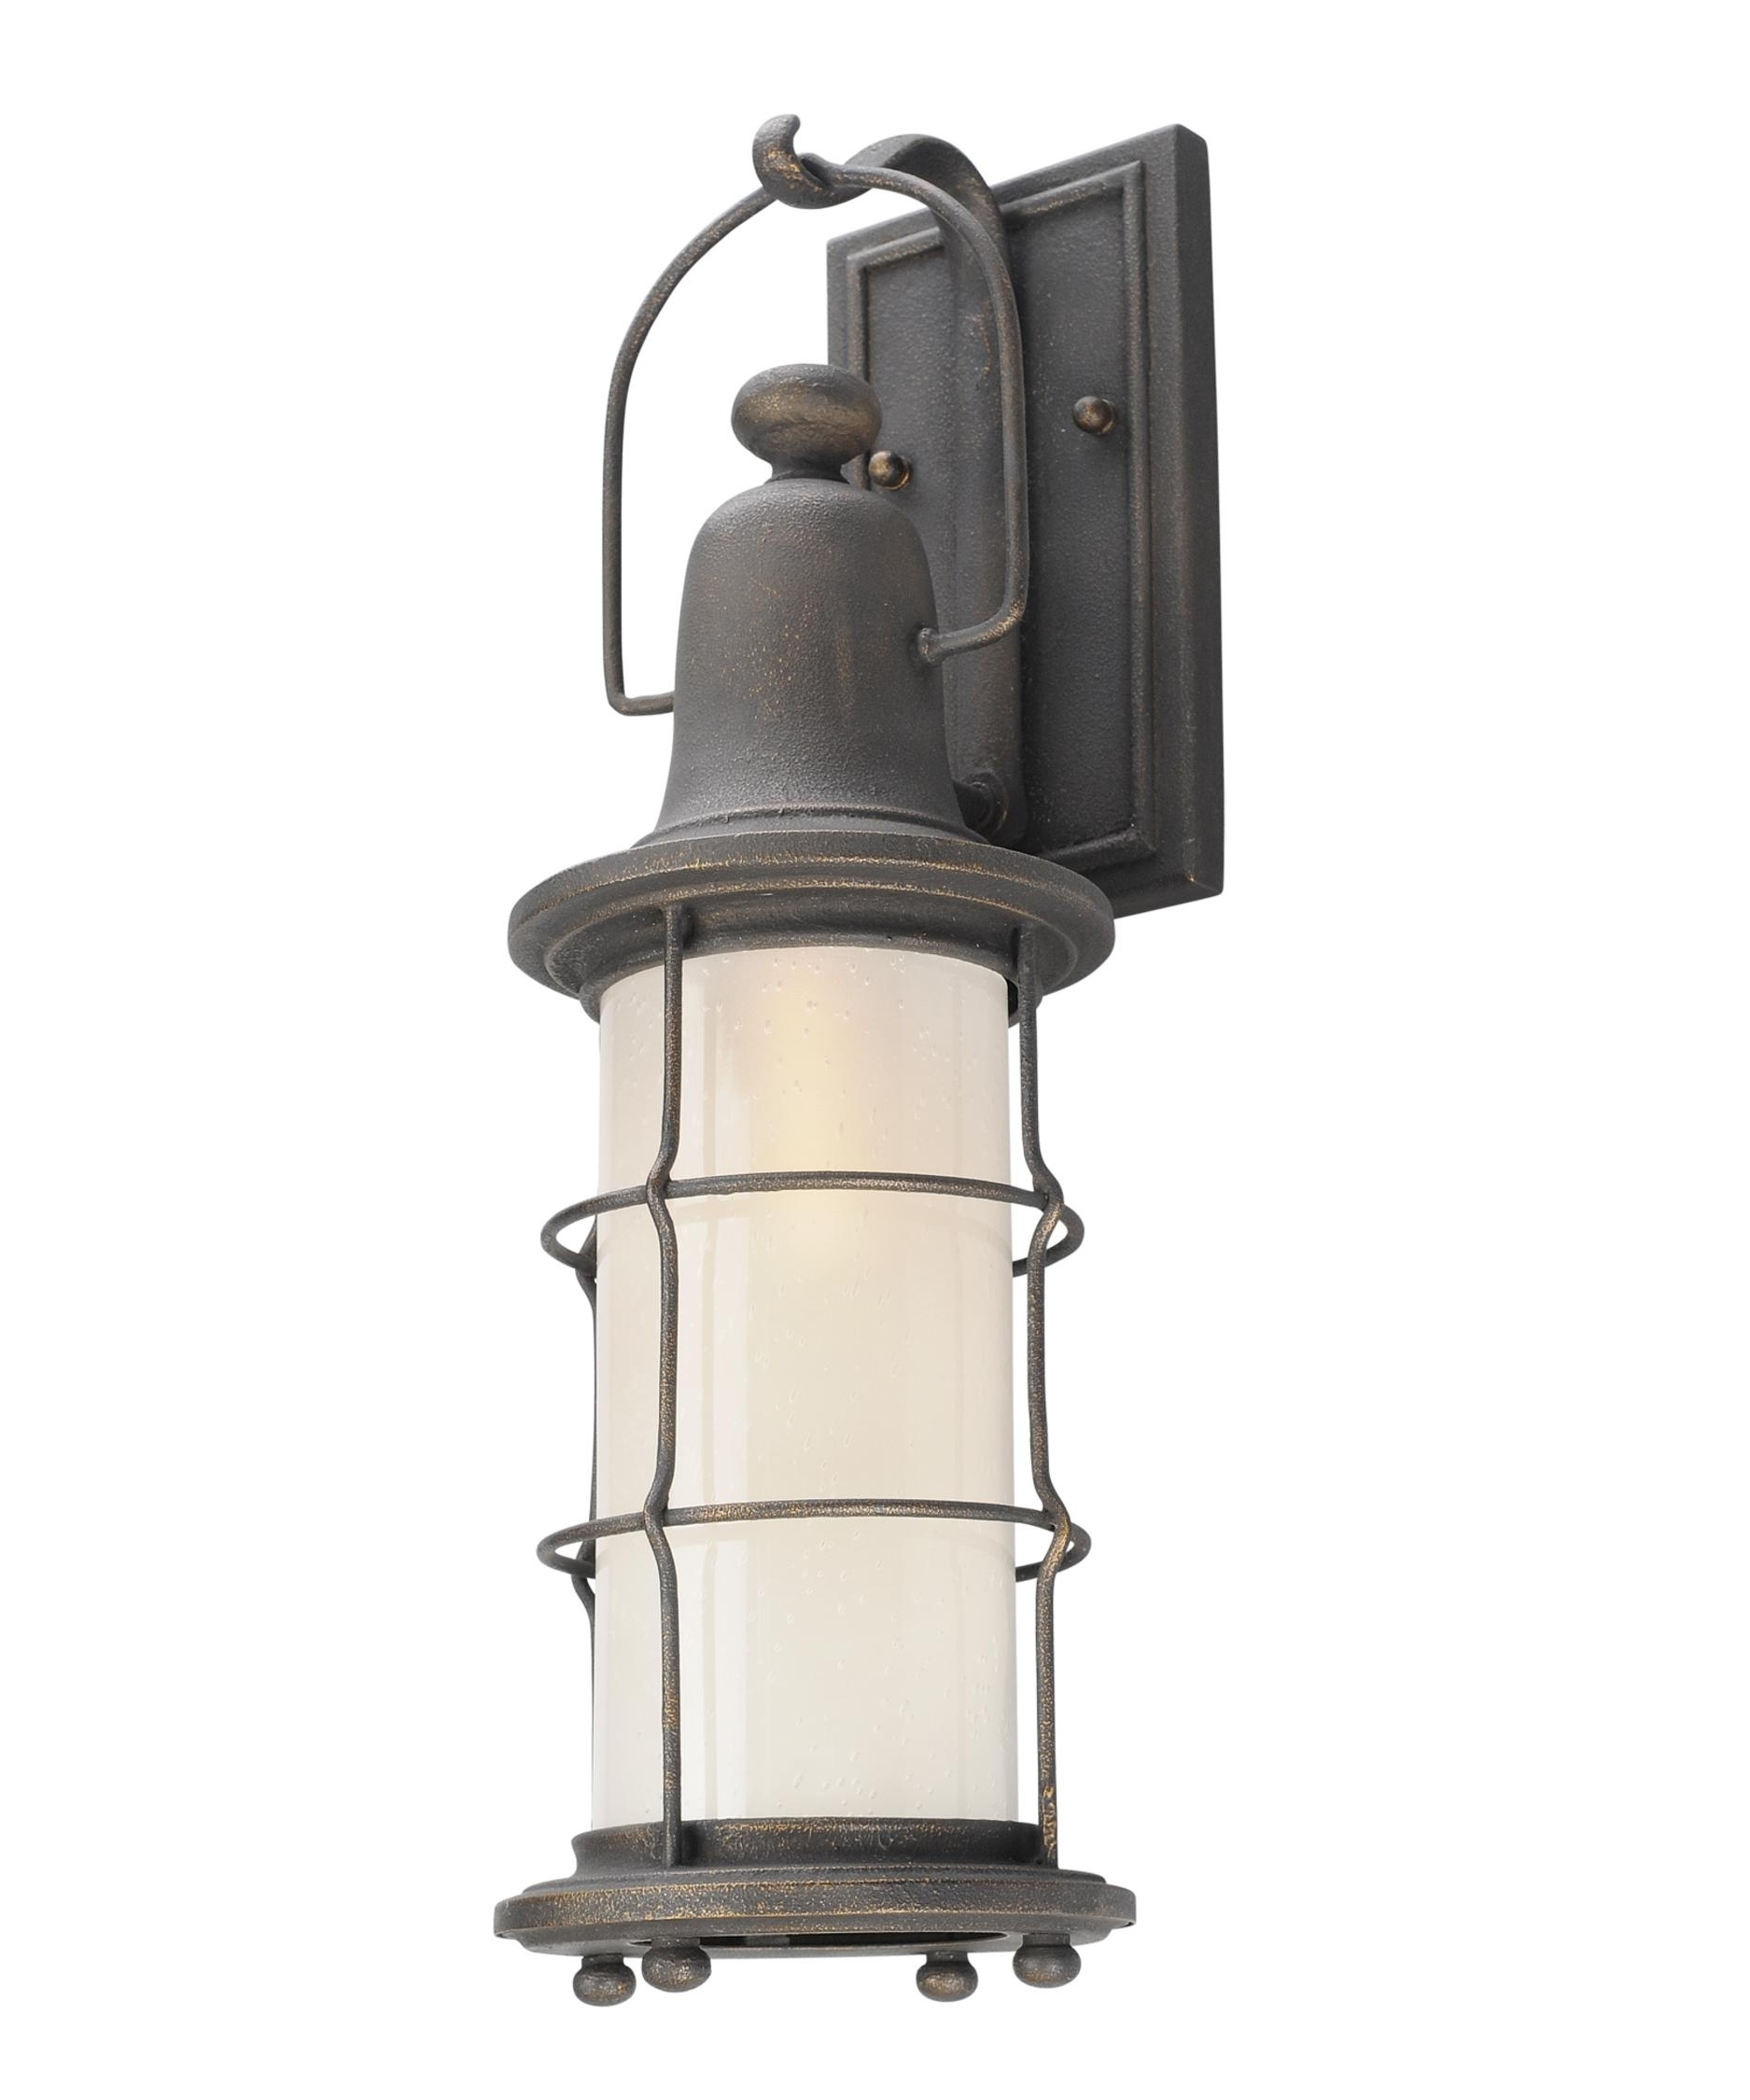 Outdoor Nautical Lanterns With Most Recent Troy Lighting B4441 Maritime 6 Inch Wide 1 Light Outdoor Wall Light (View 19 of 20)